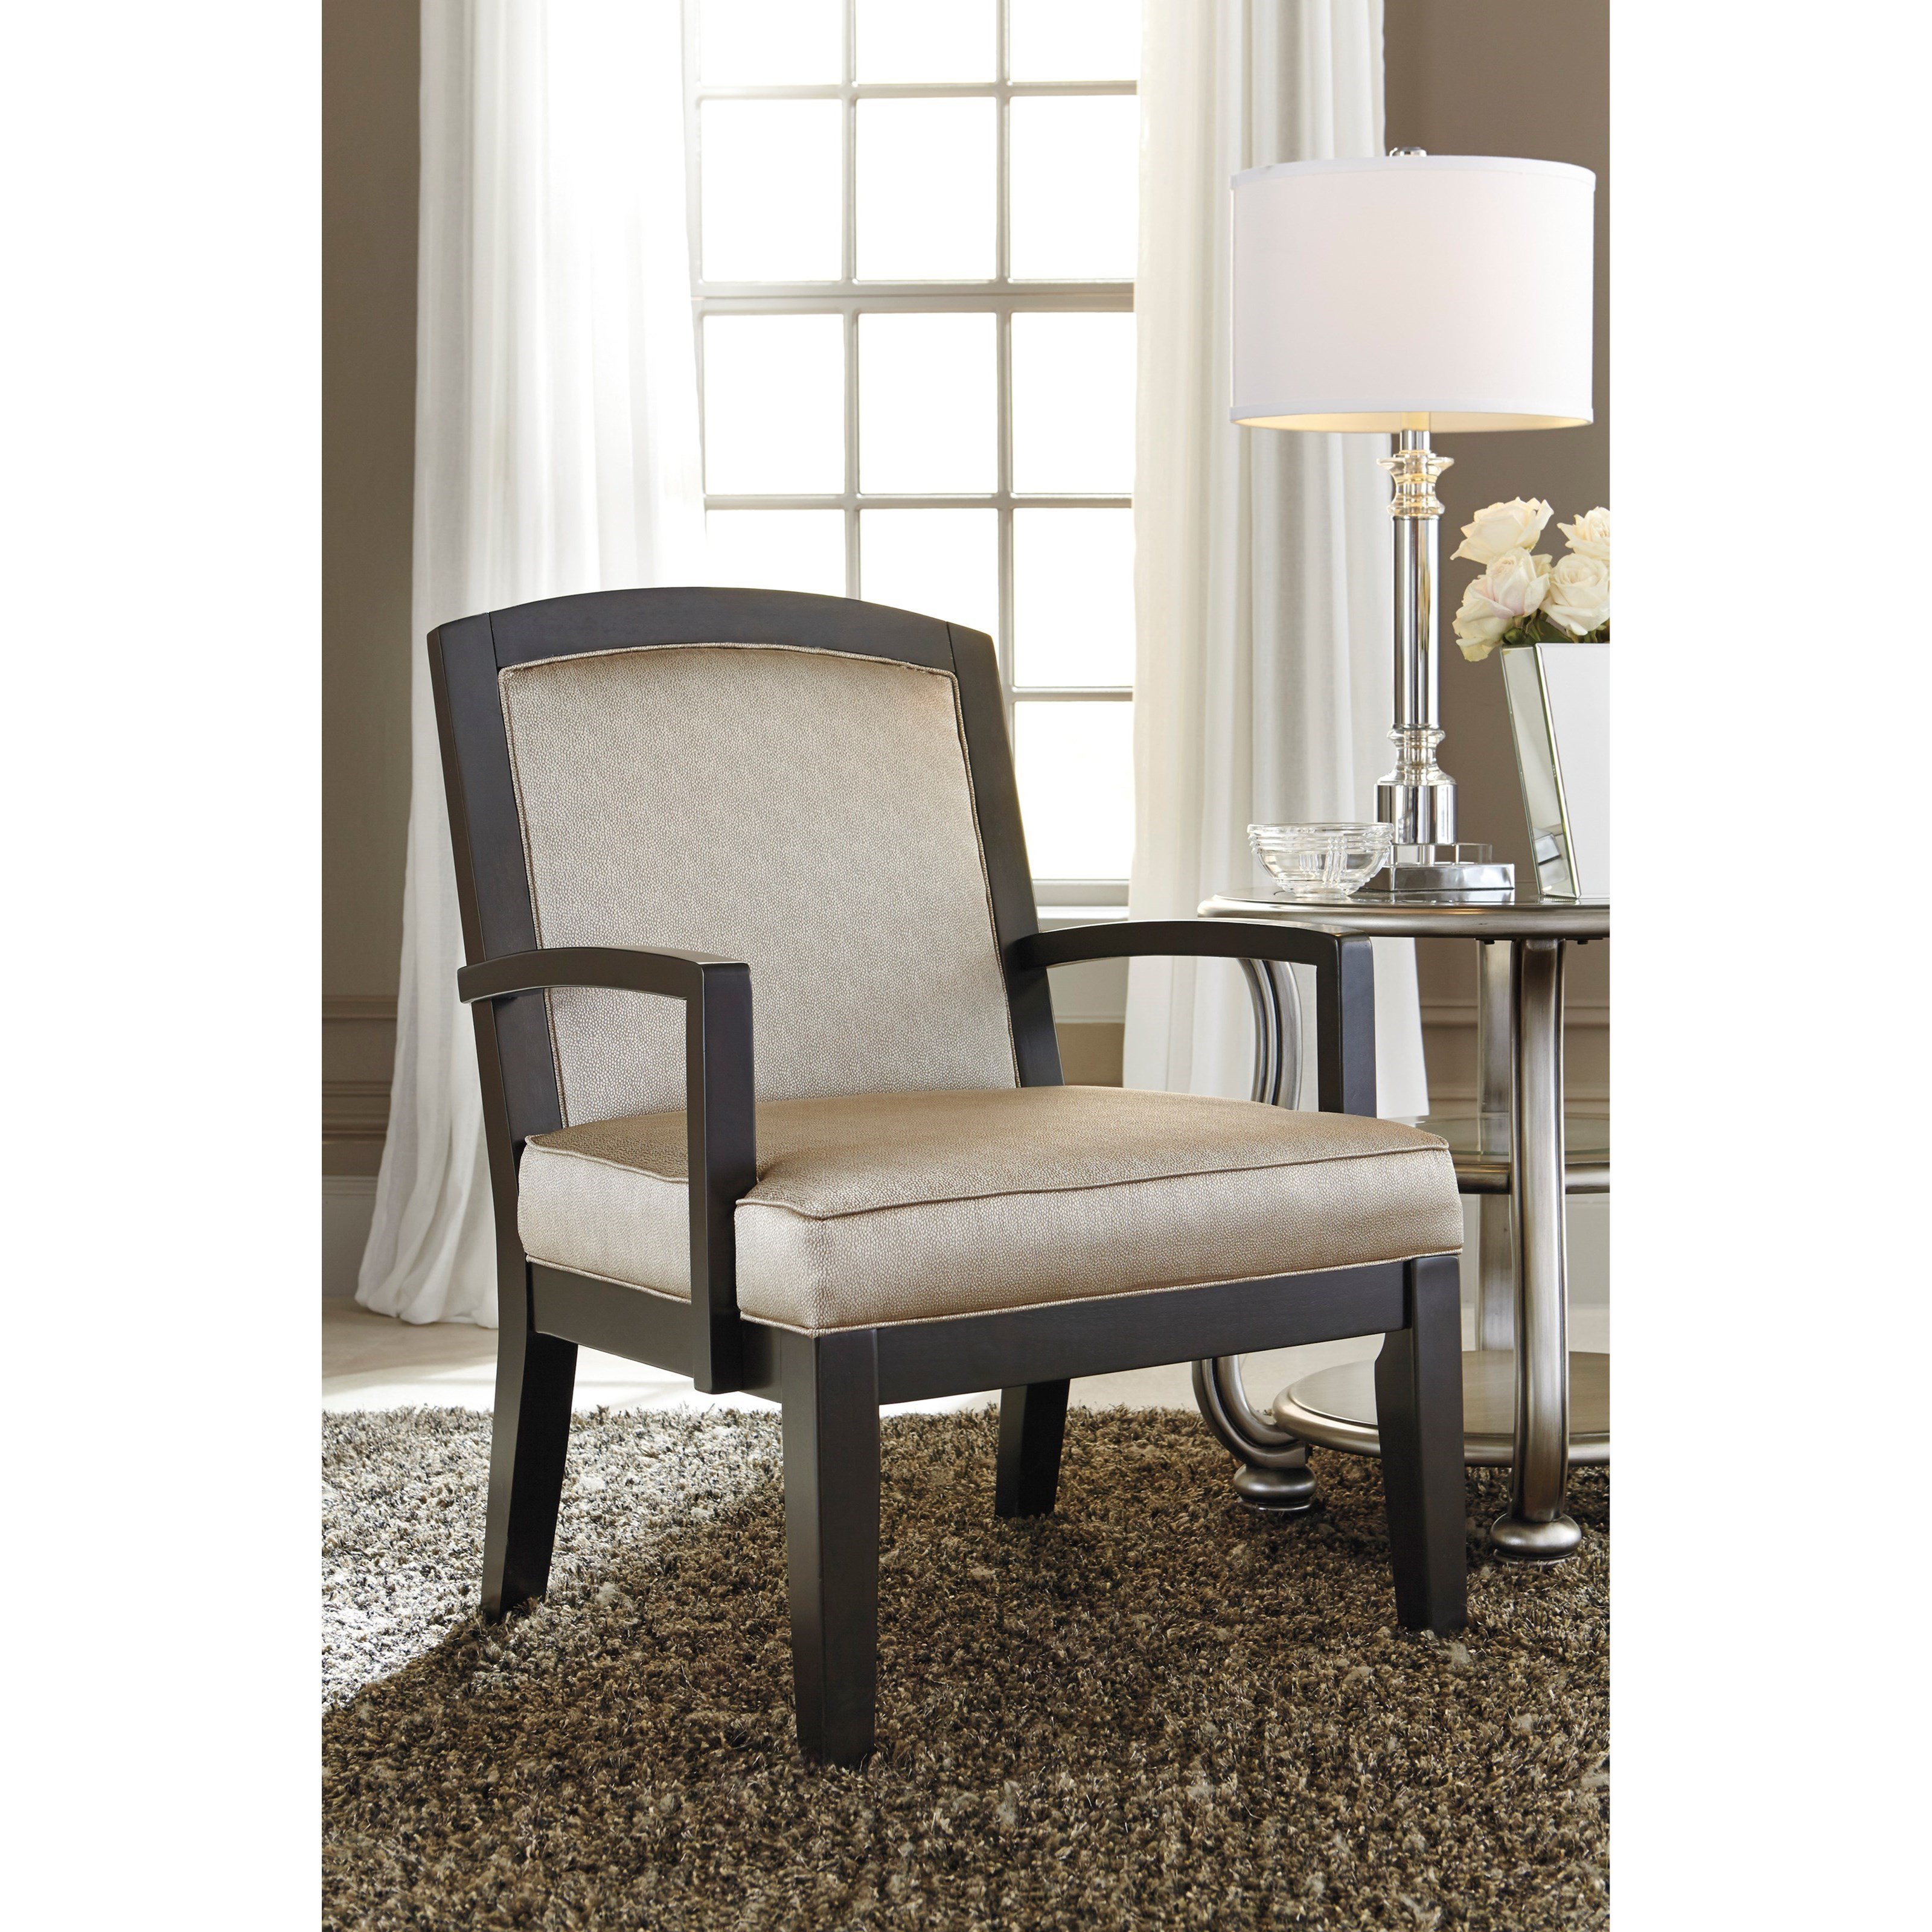 Accent Chair with Glam Fabric by Ashley Furniture